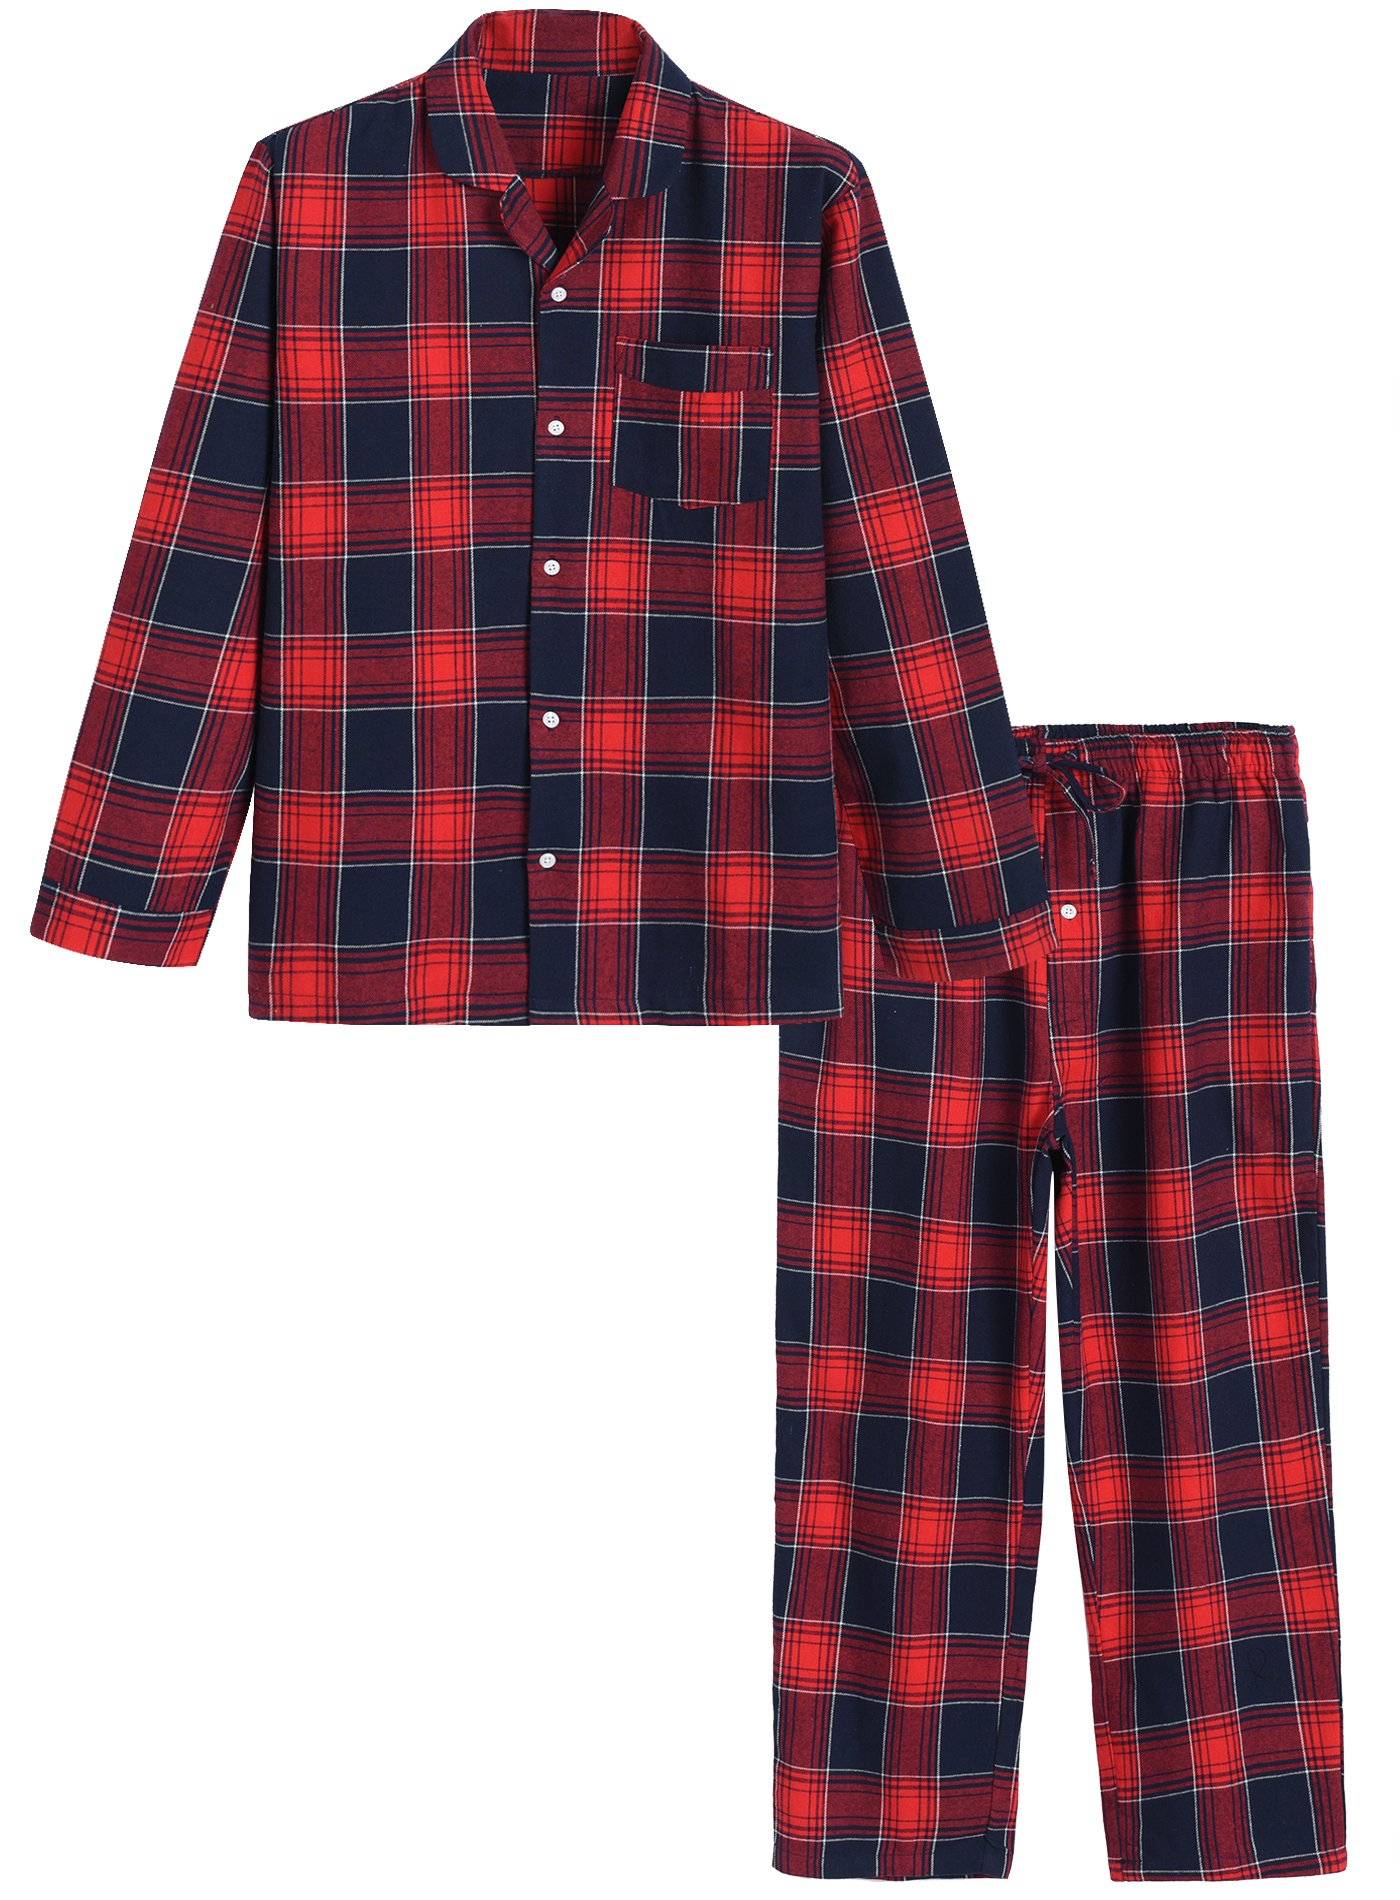 Image of Comfortable Red Plaid Flannel Pajamas - See More Colors